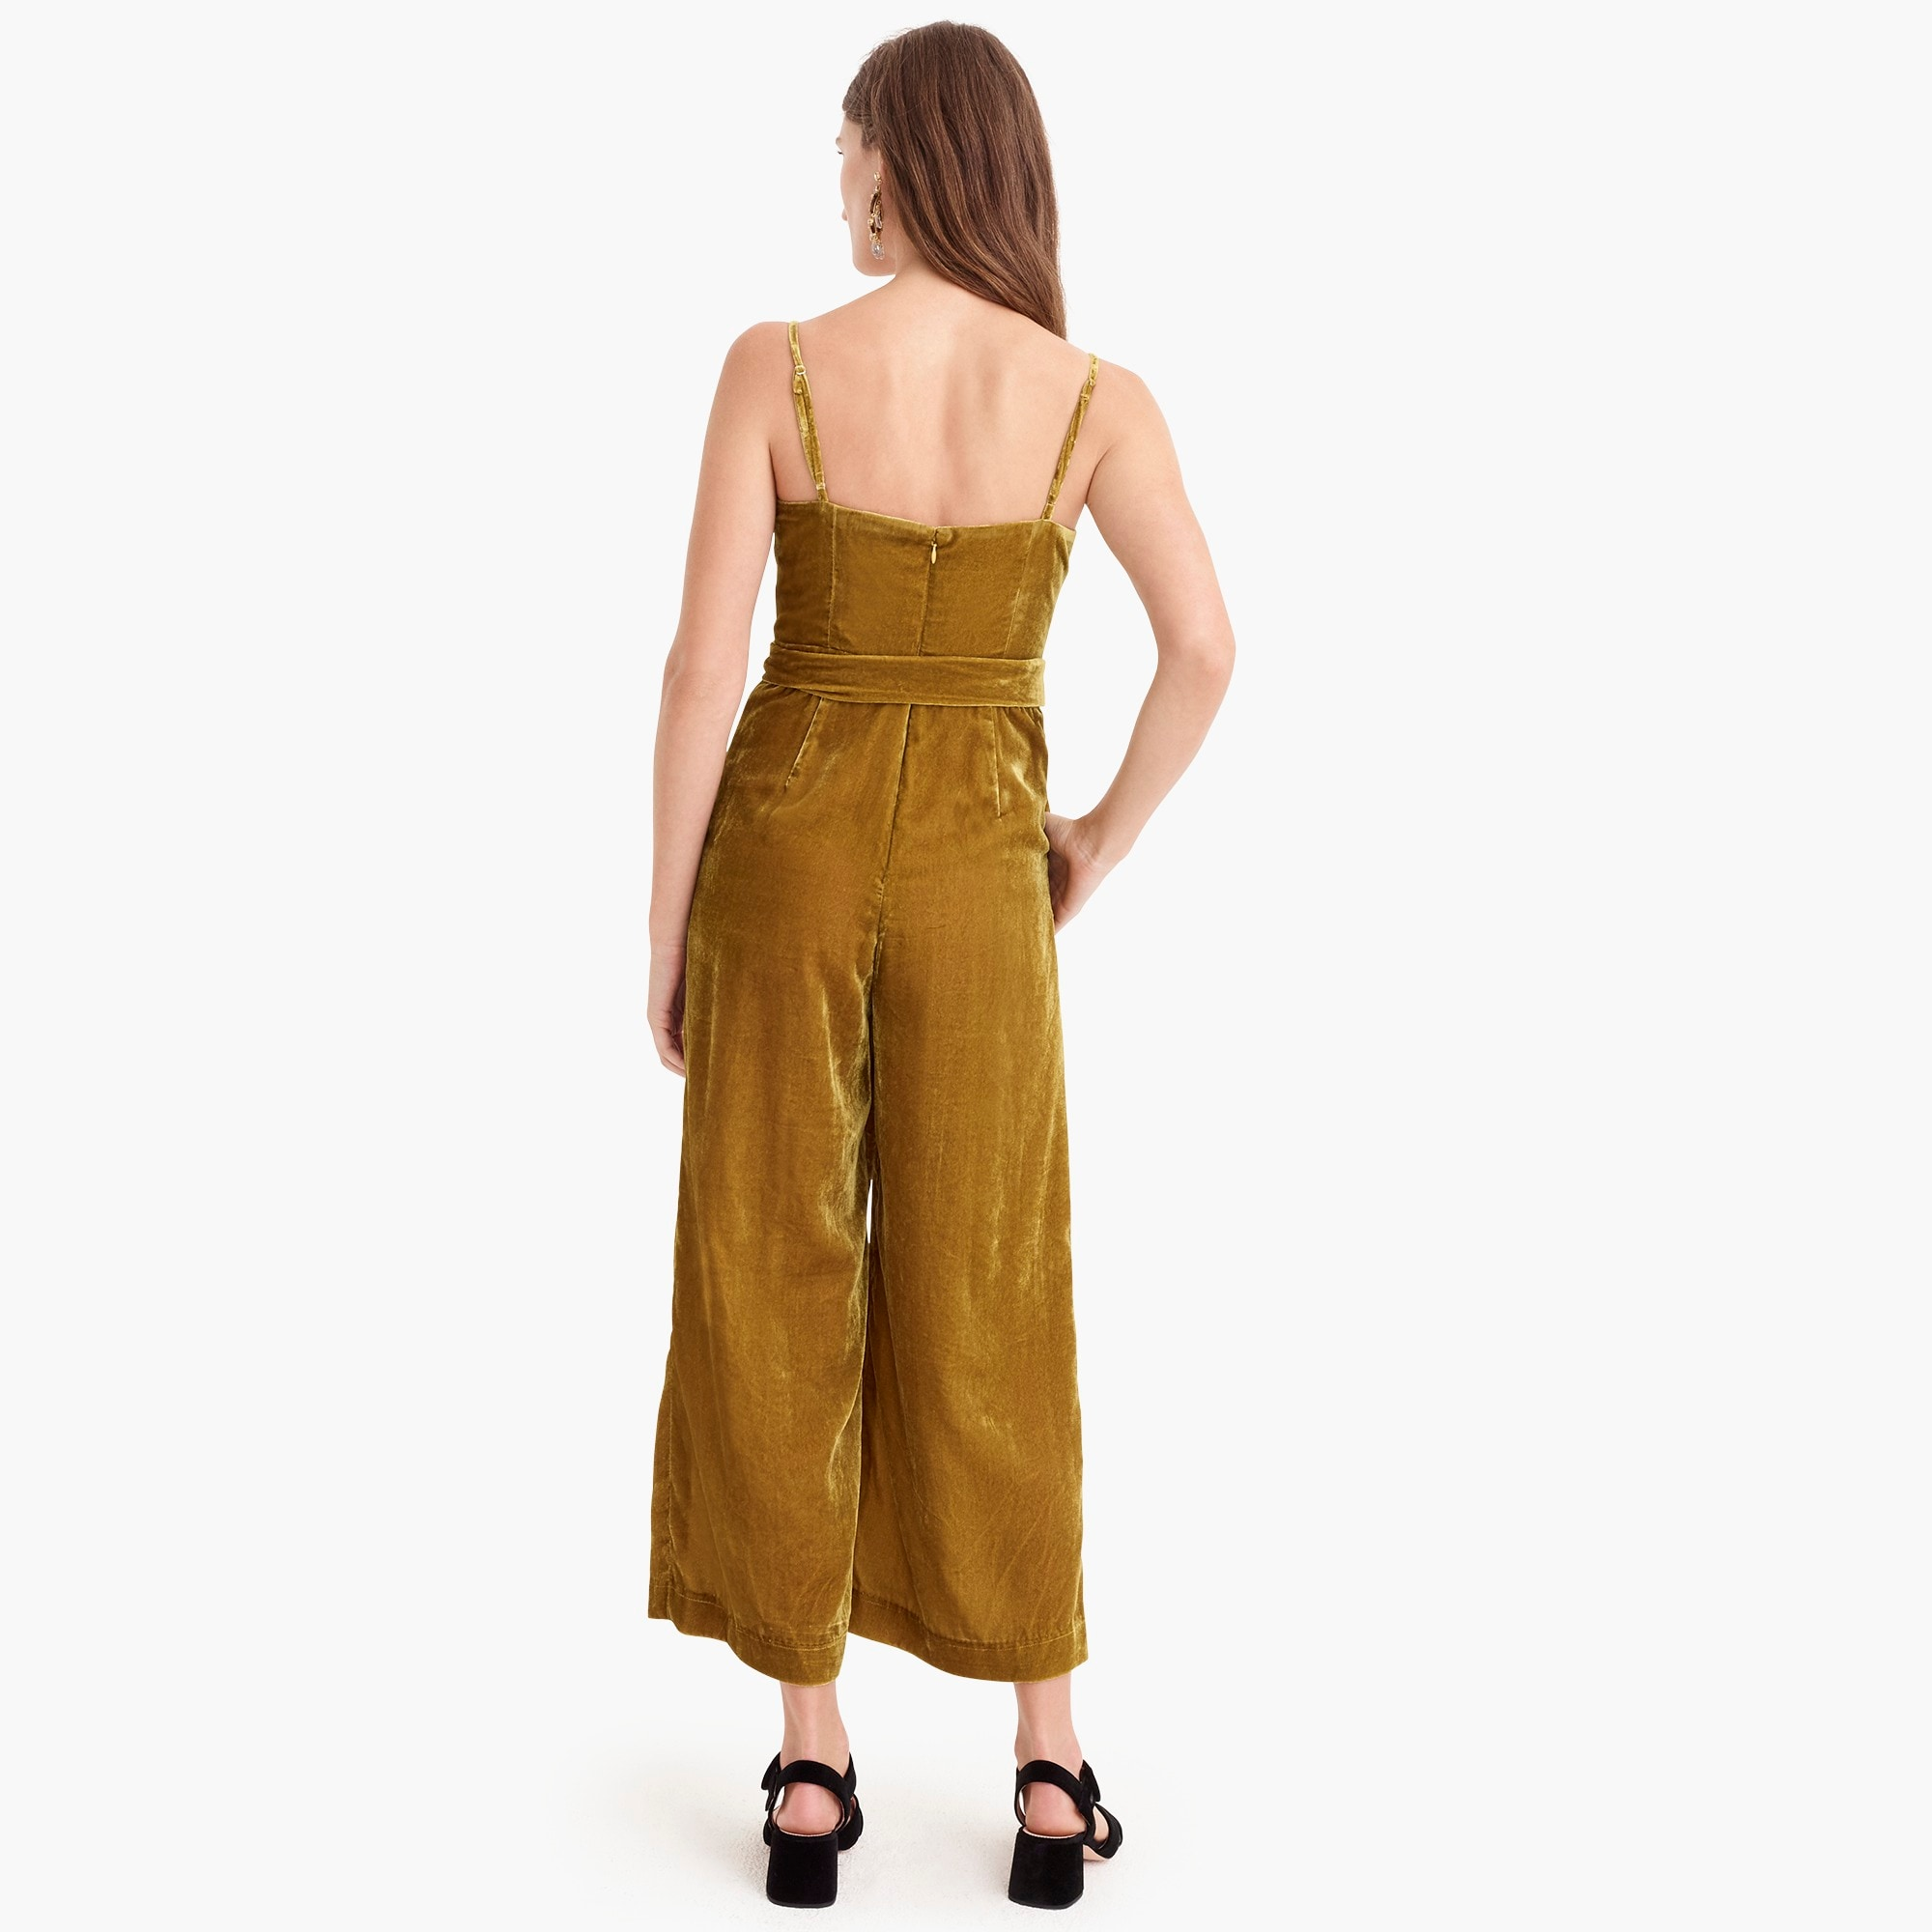 Image 6 for Velvet jumpsuit with tie